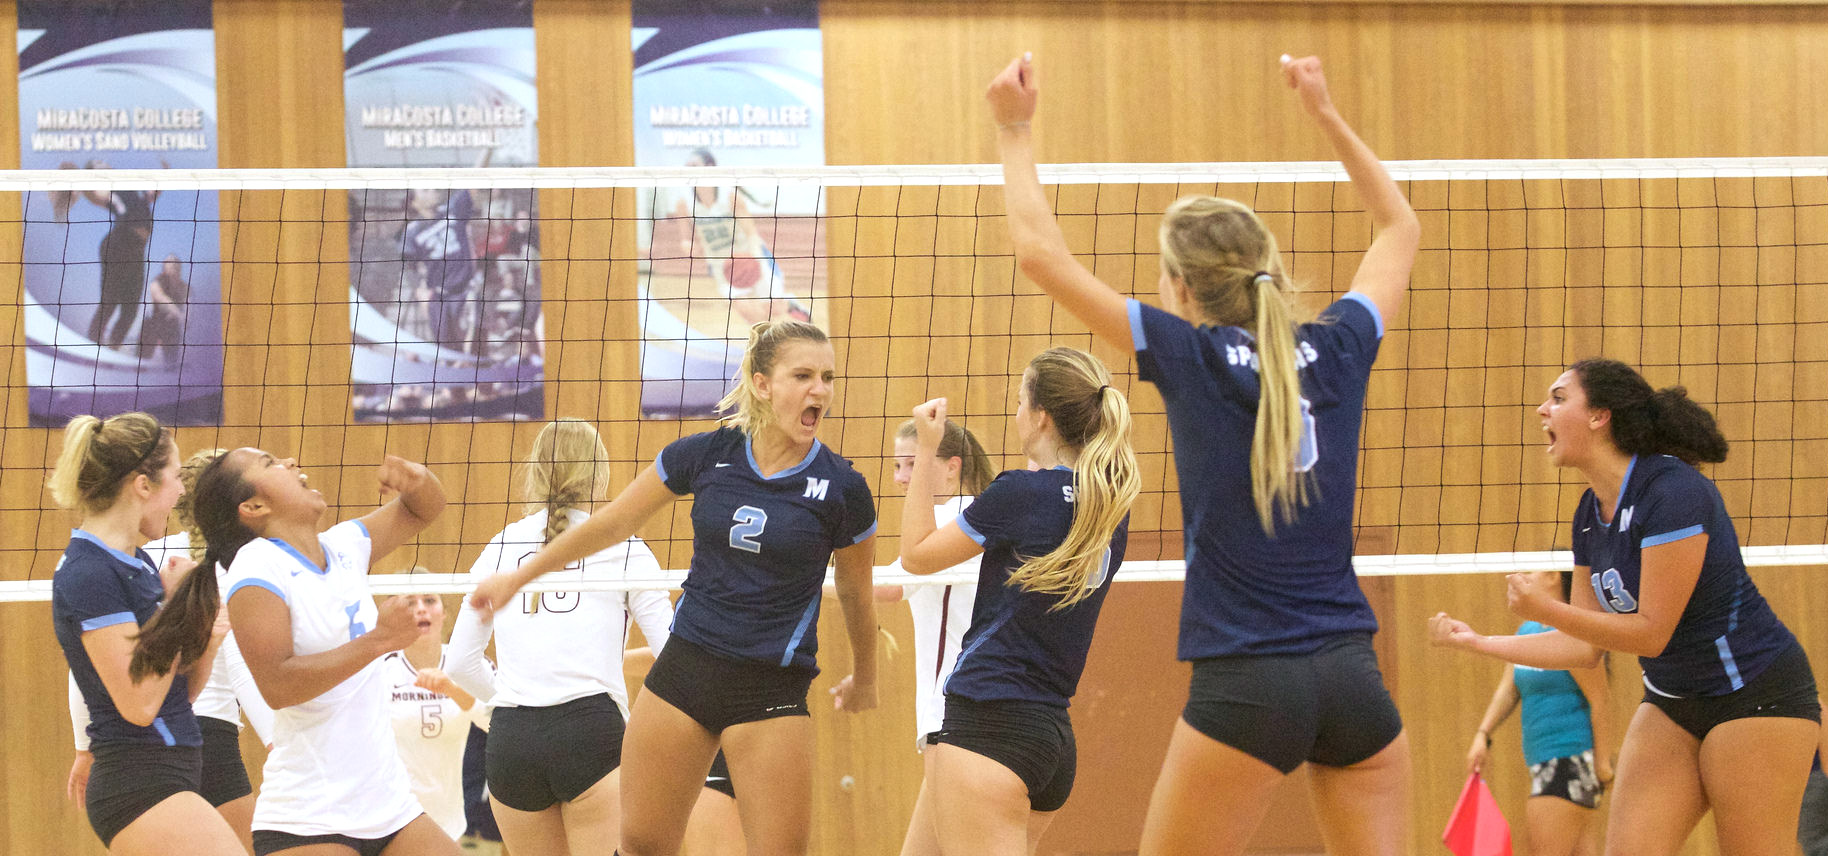 Women's volleyball team celebrating a point.